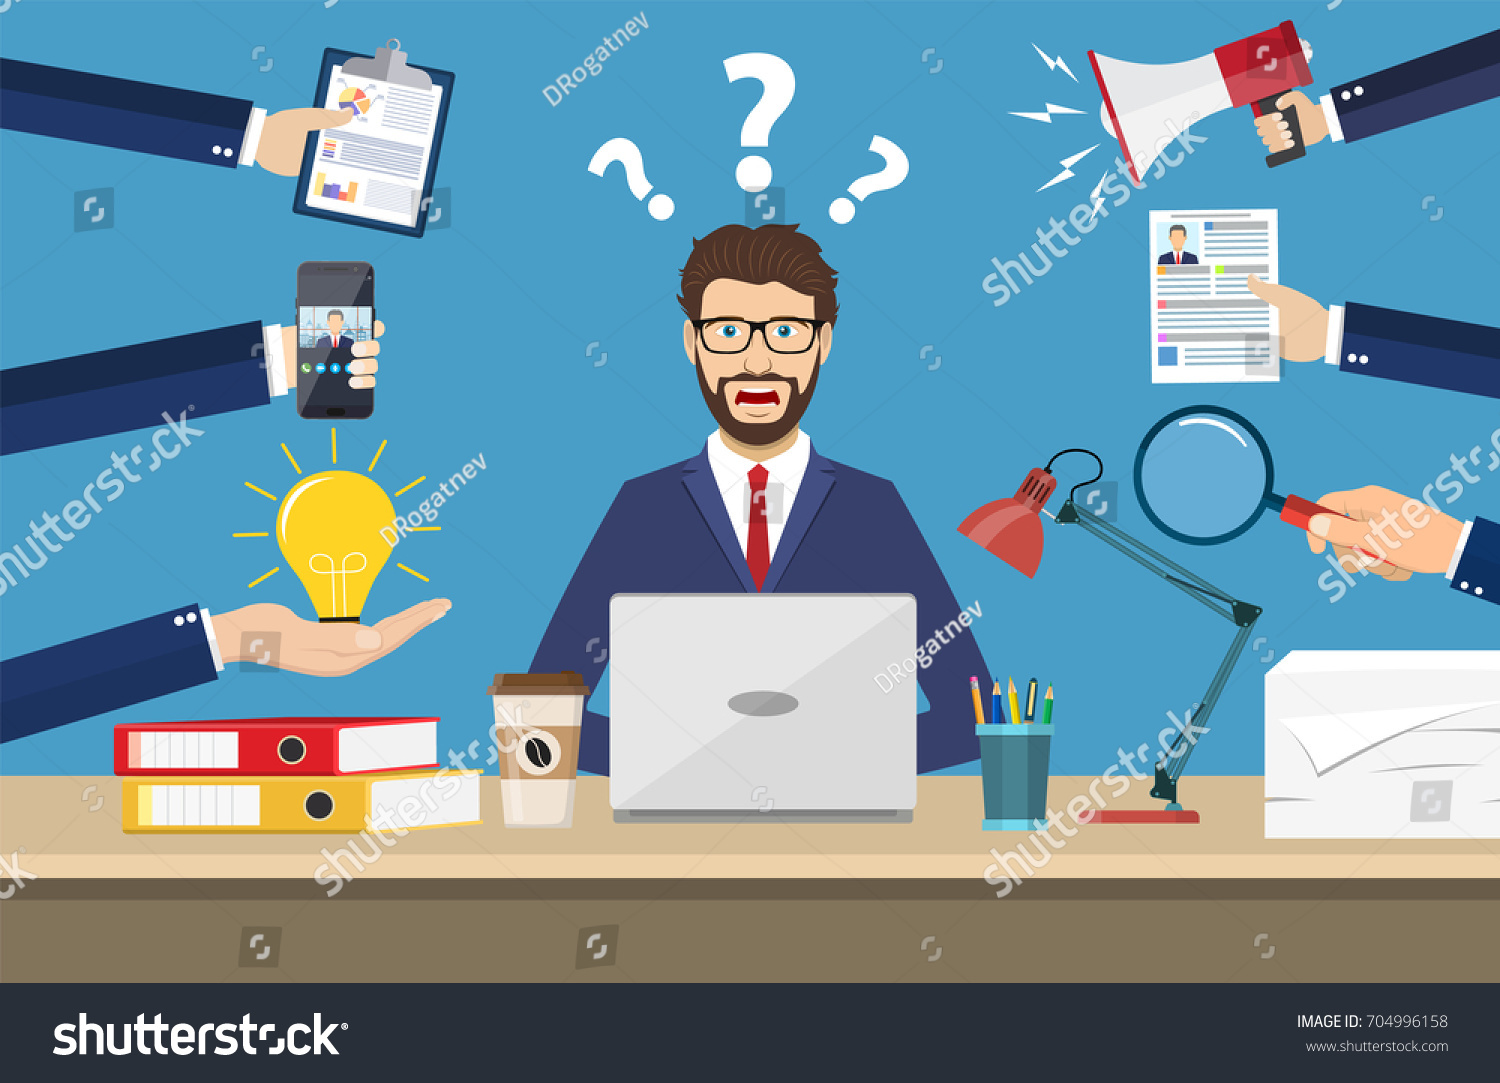 stock-vector-happy-businessman-with-many-hands-holding-papers-coffee-mobile-phone-multitasking-and-704996158.jpg